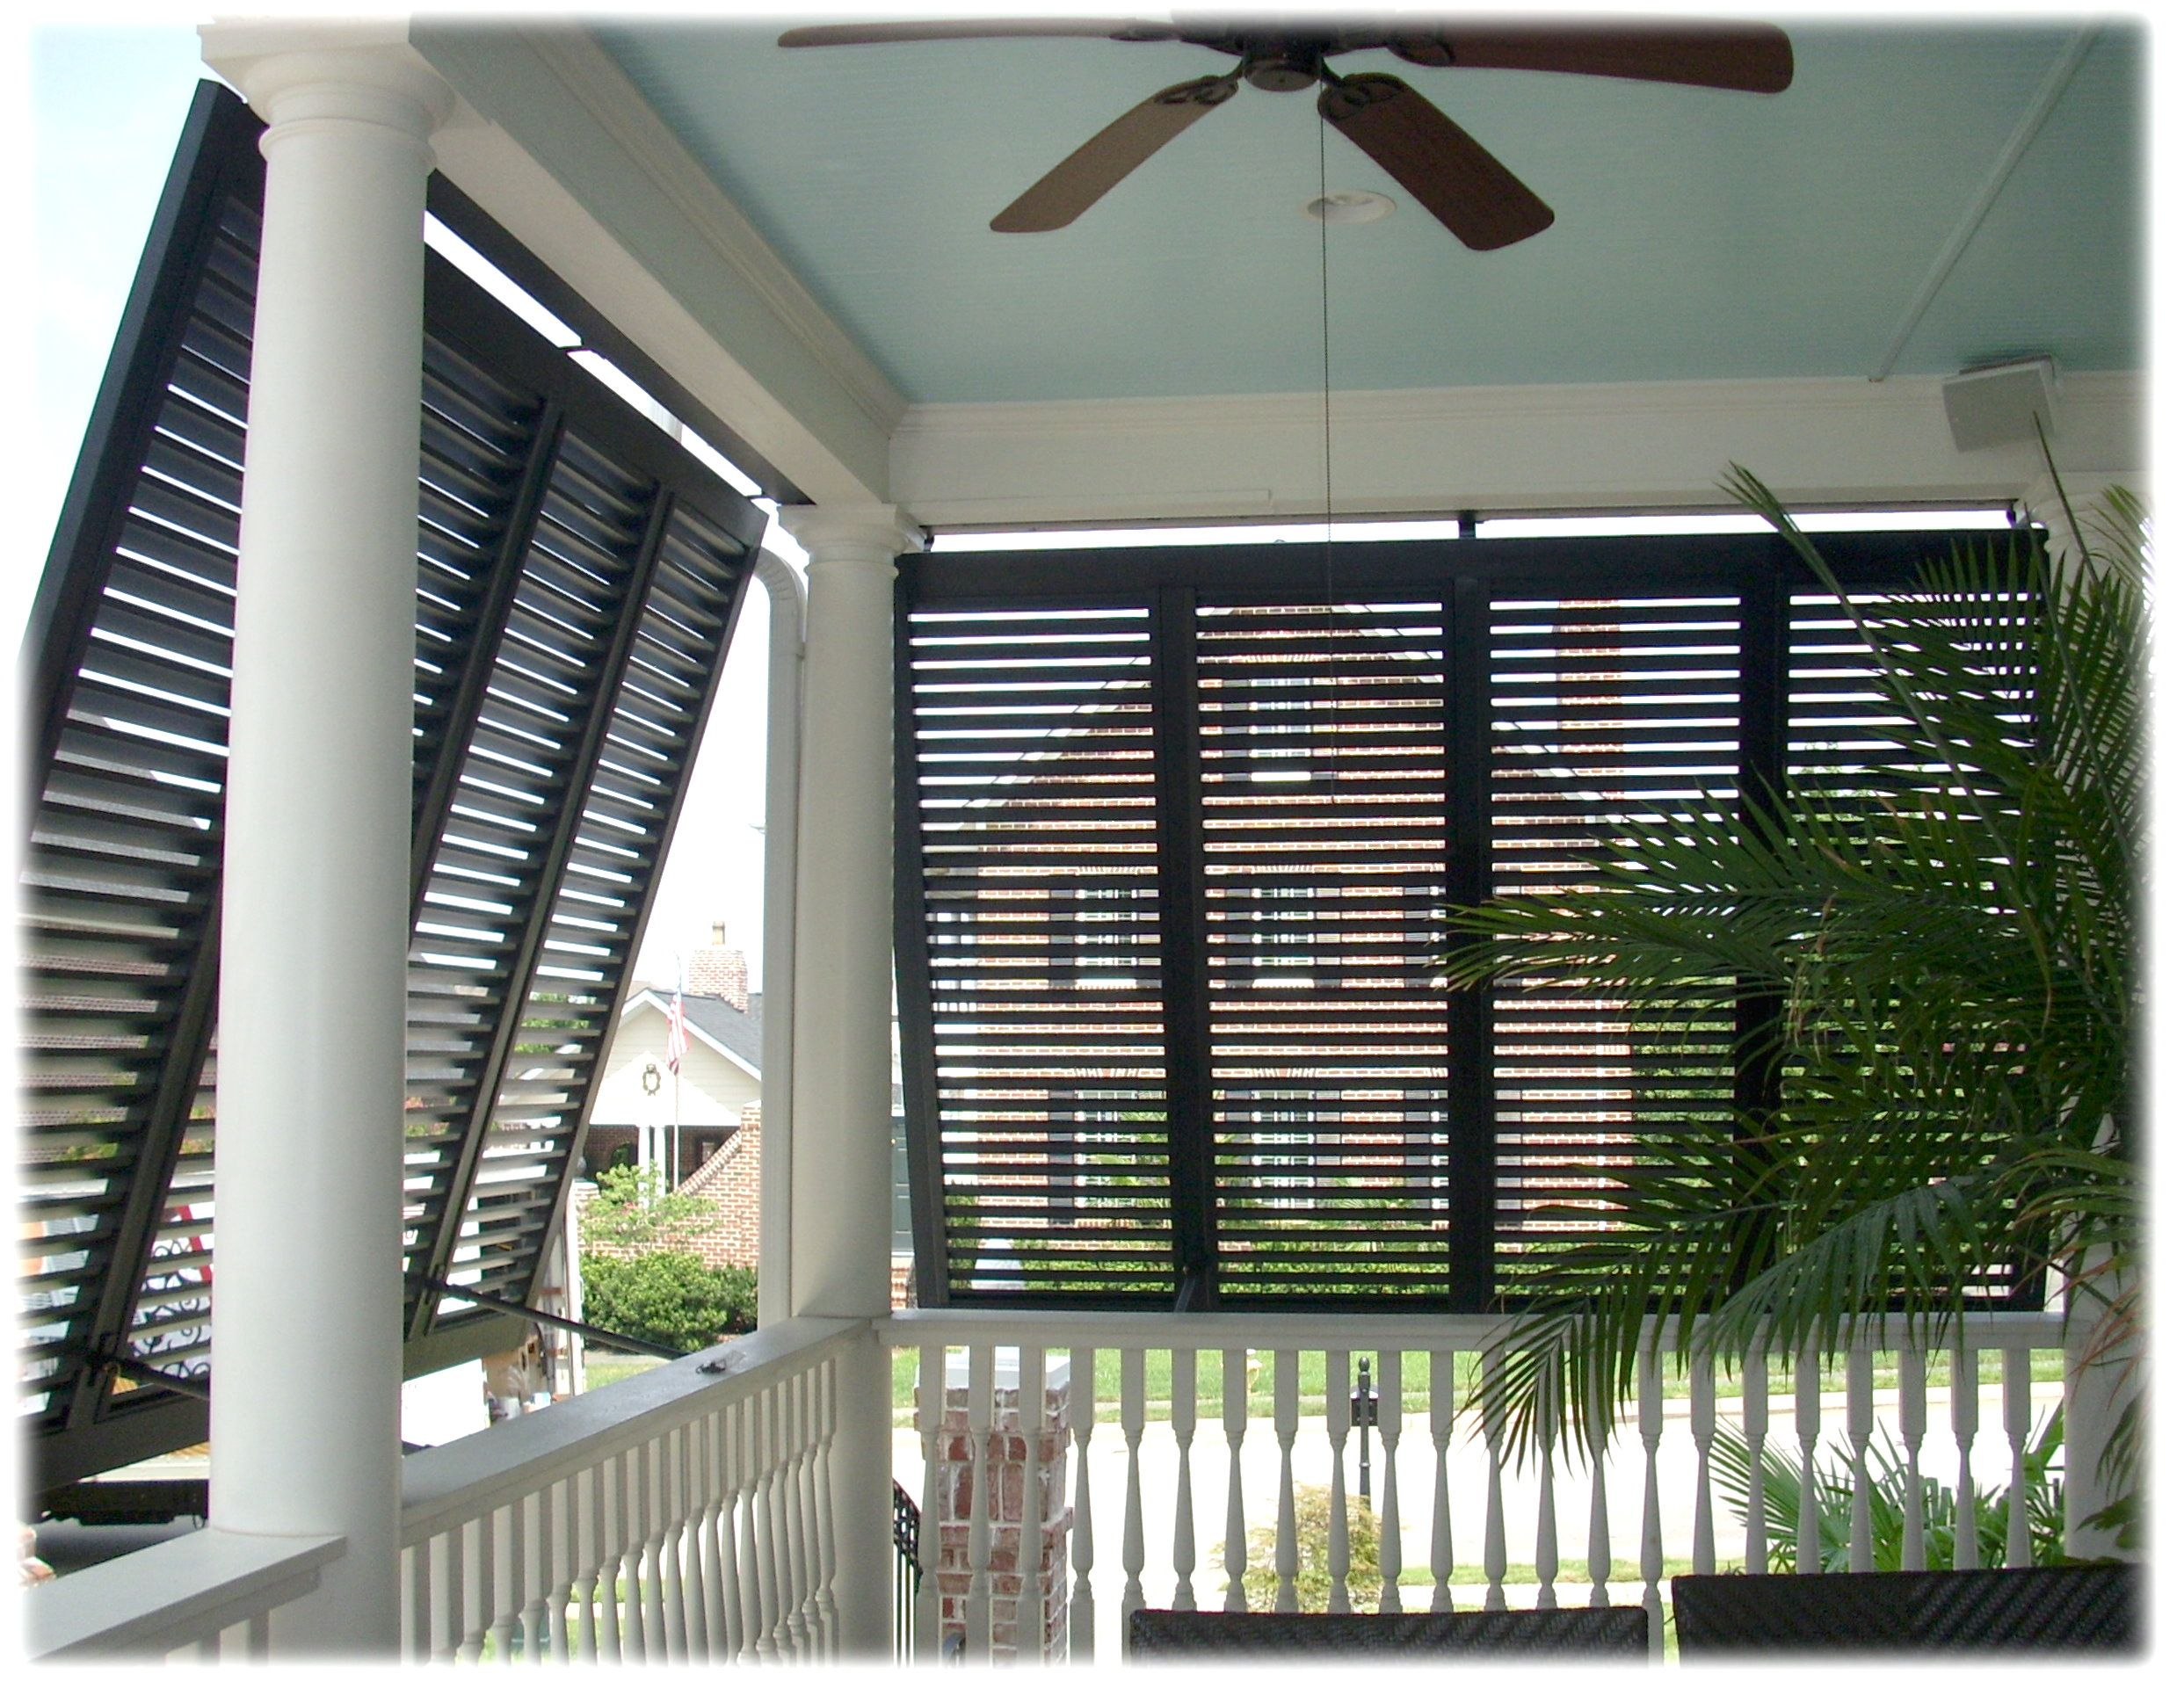 Porch Shutters I Would Love To Have These On My Porch Outdoor Living Pinterest